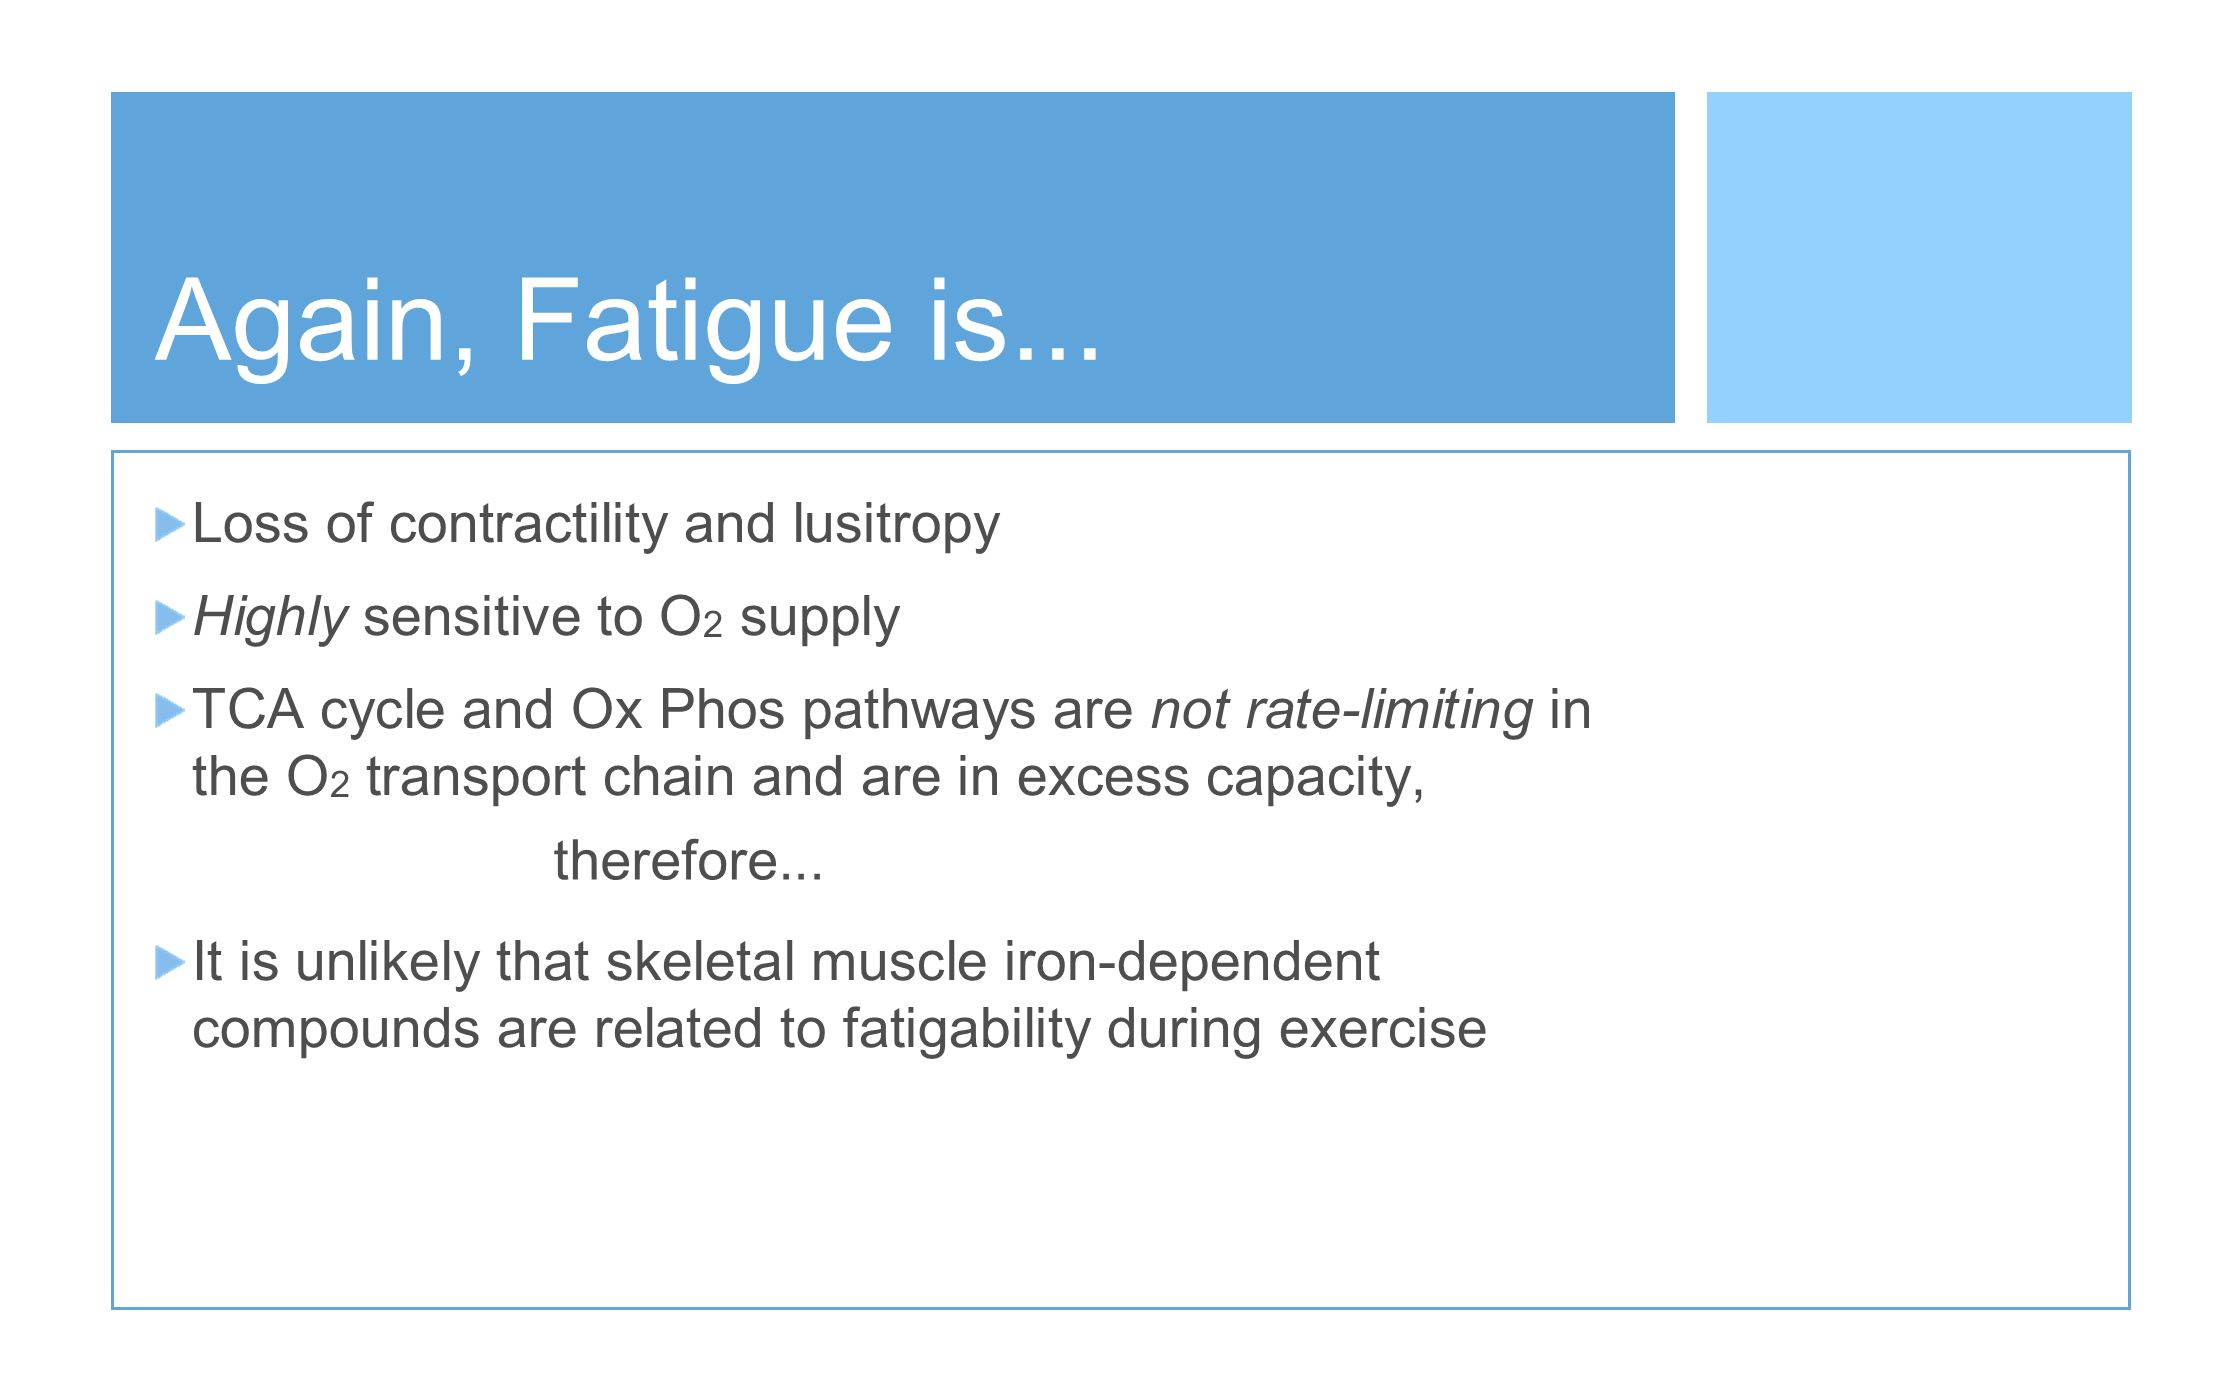 Again, Fatigue is... Loss of contractility and lusitropy